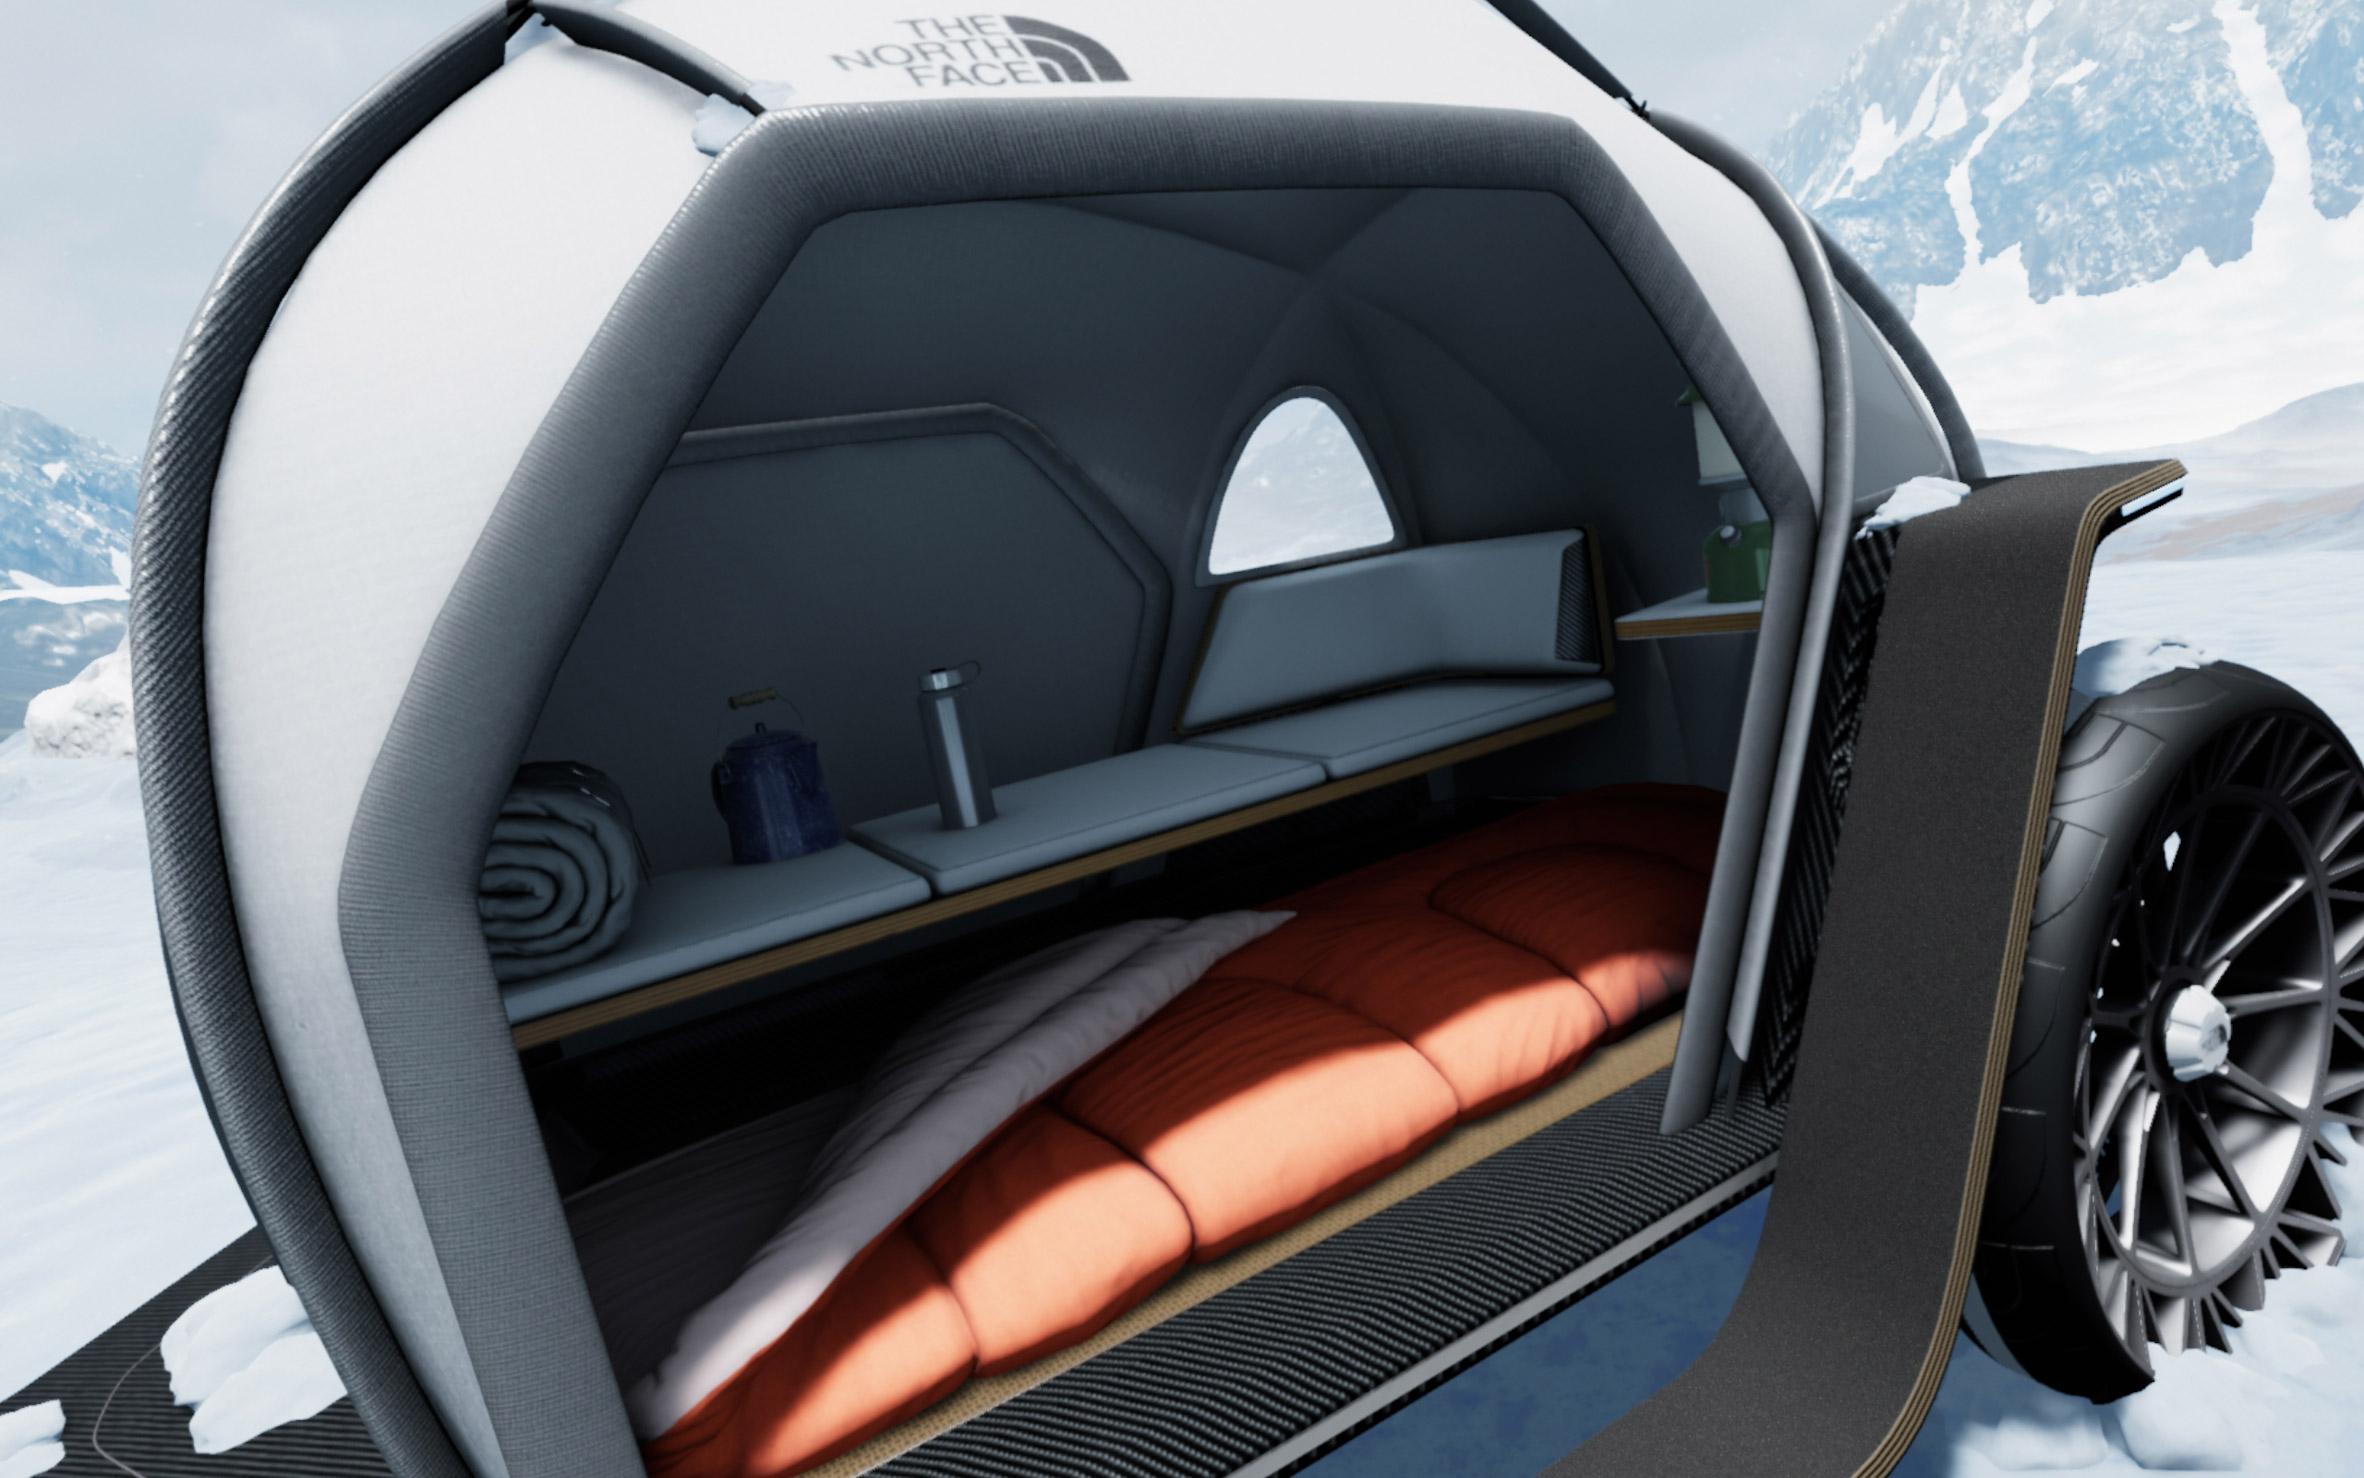 BMW Designworks and North Face debut futuristic camper concept at CES